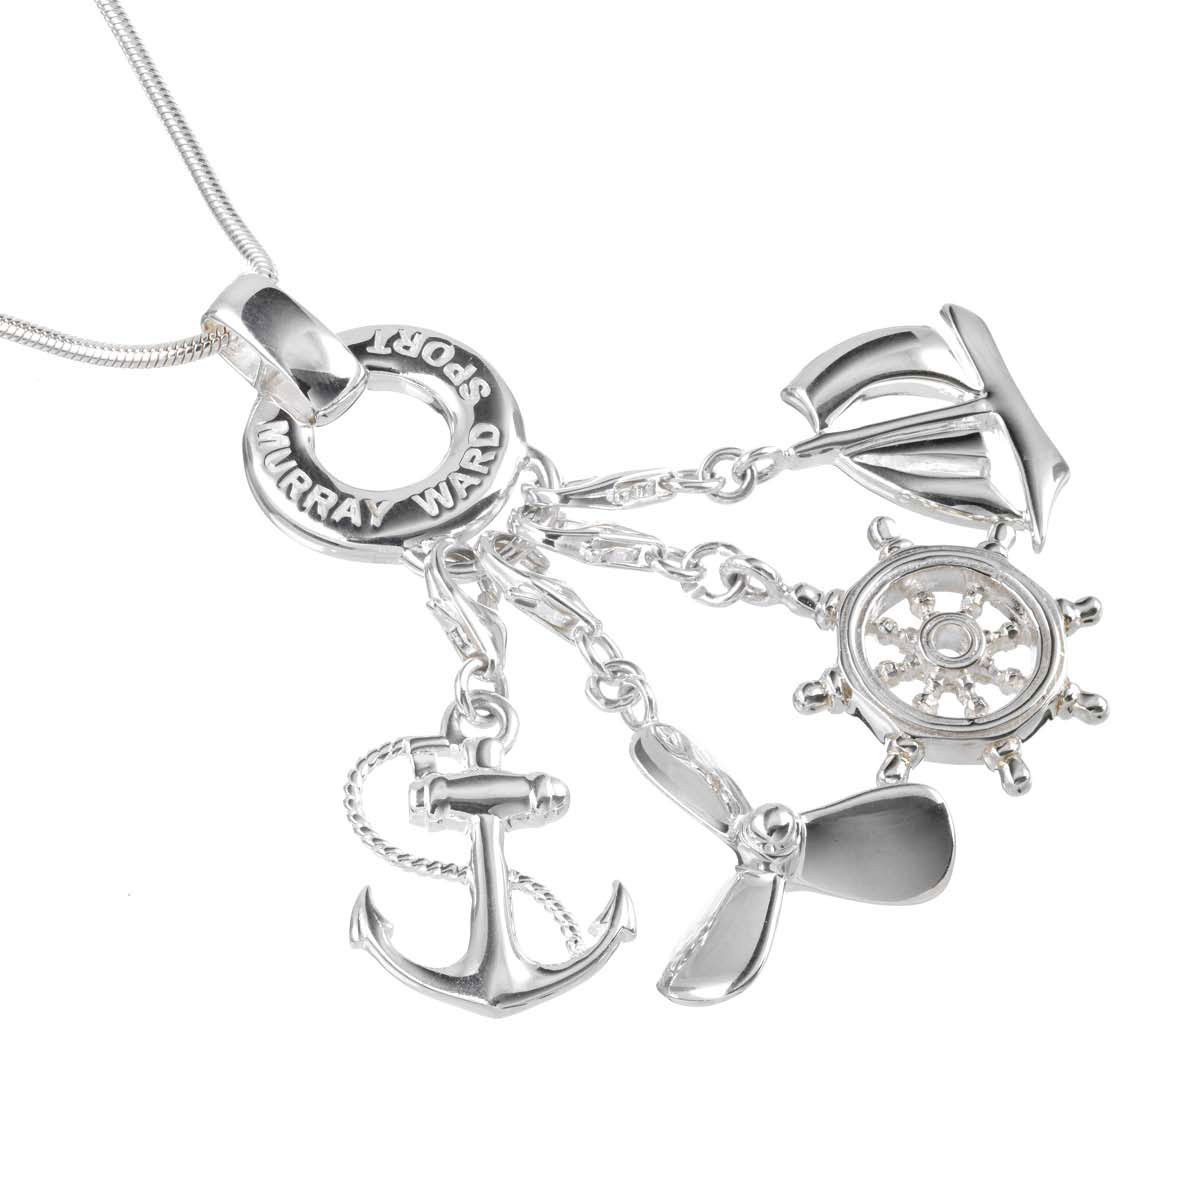 Sterling Silver Nautical Charm Necklace